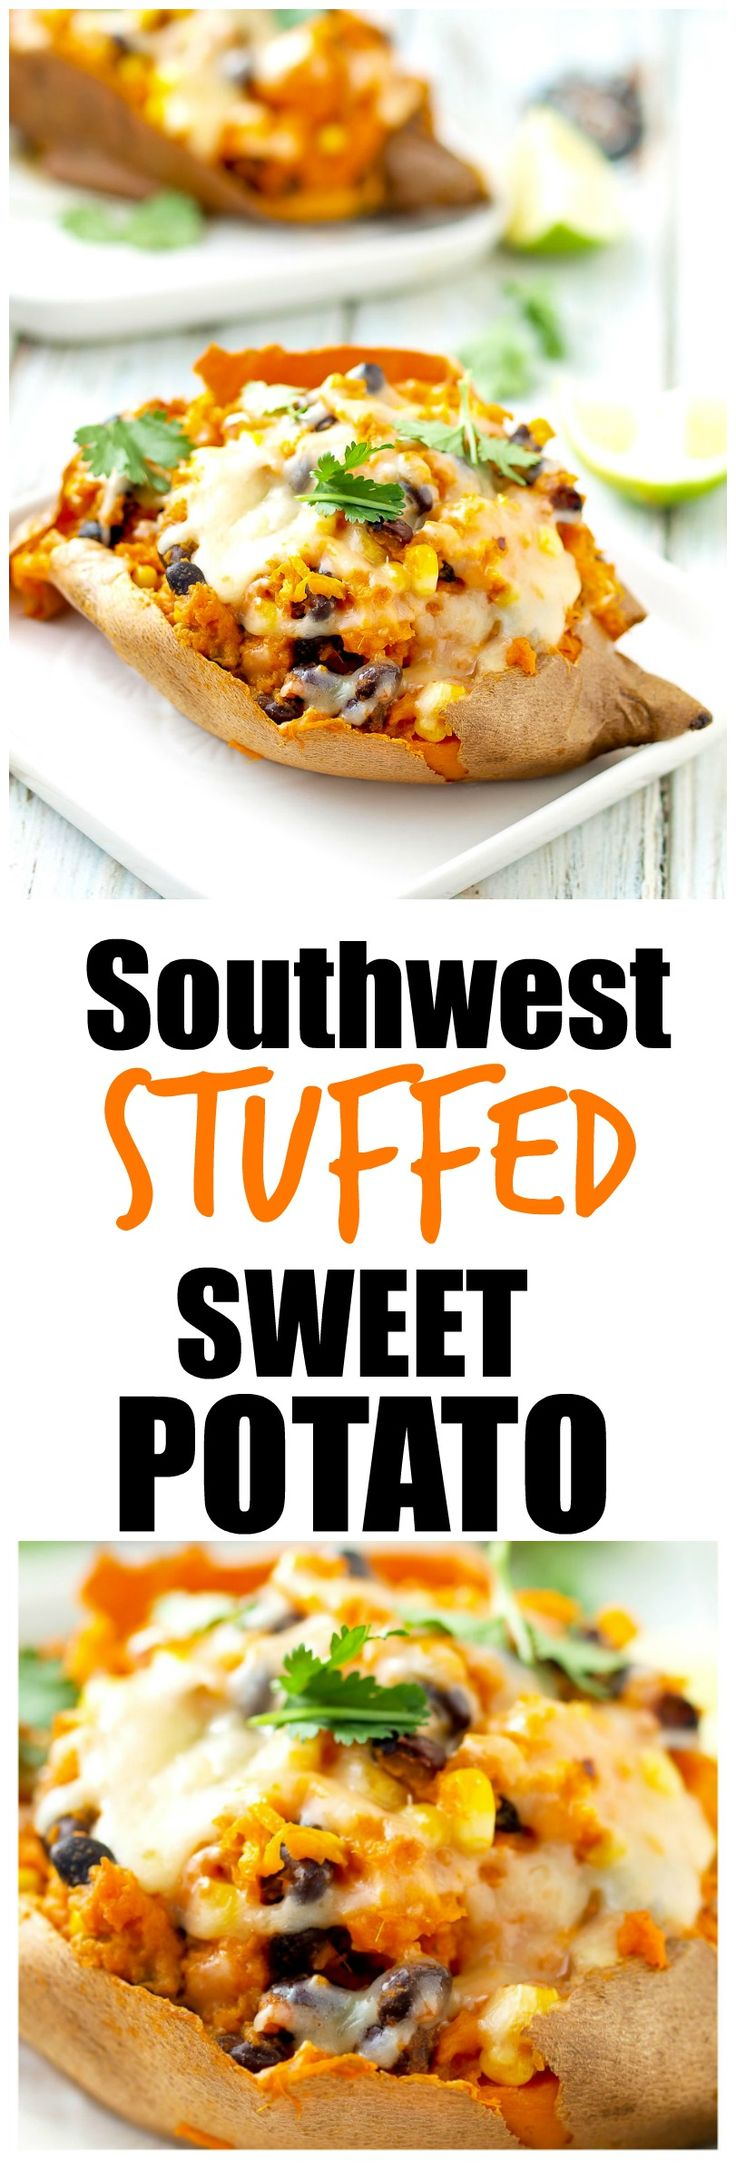 Southwest Stuffed Sweet Potato Recipe. healthy gluten-free vegetarian main course dinner idea (Healthy Mexican Recipes)